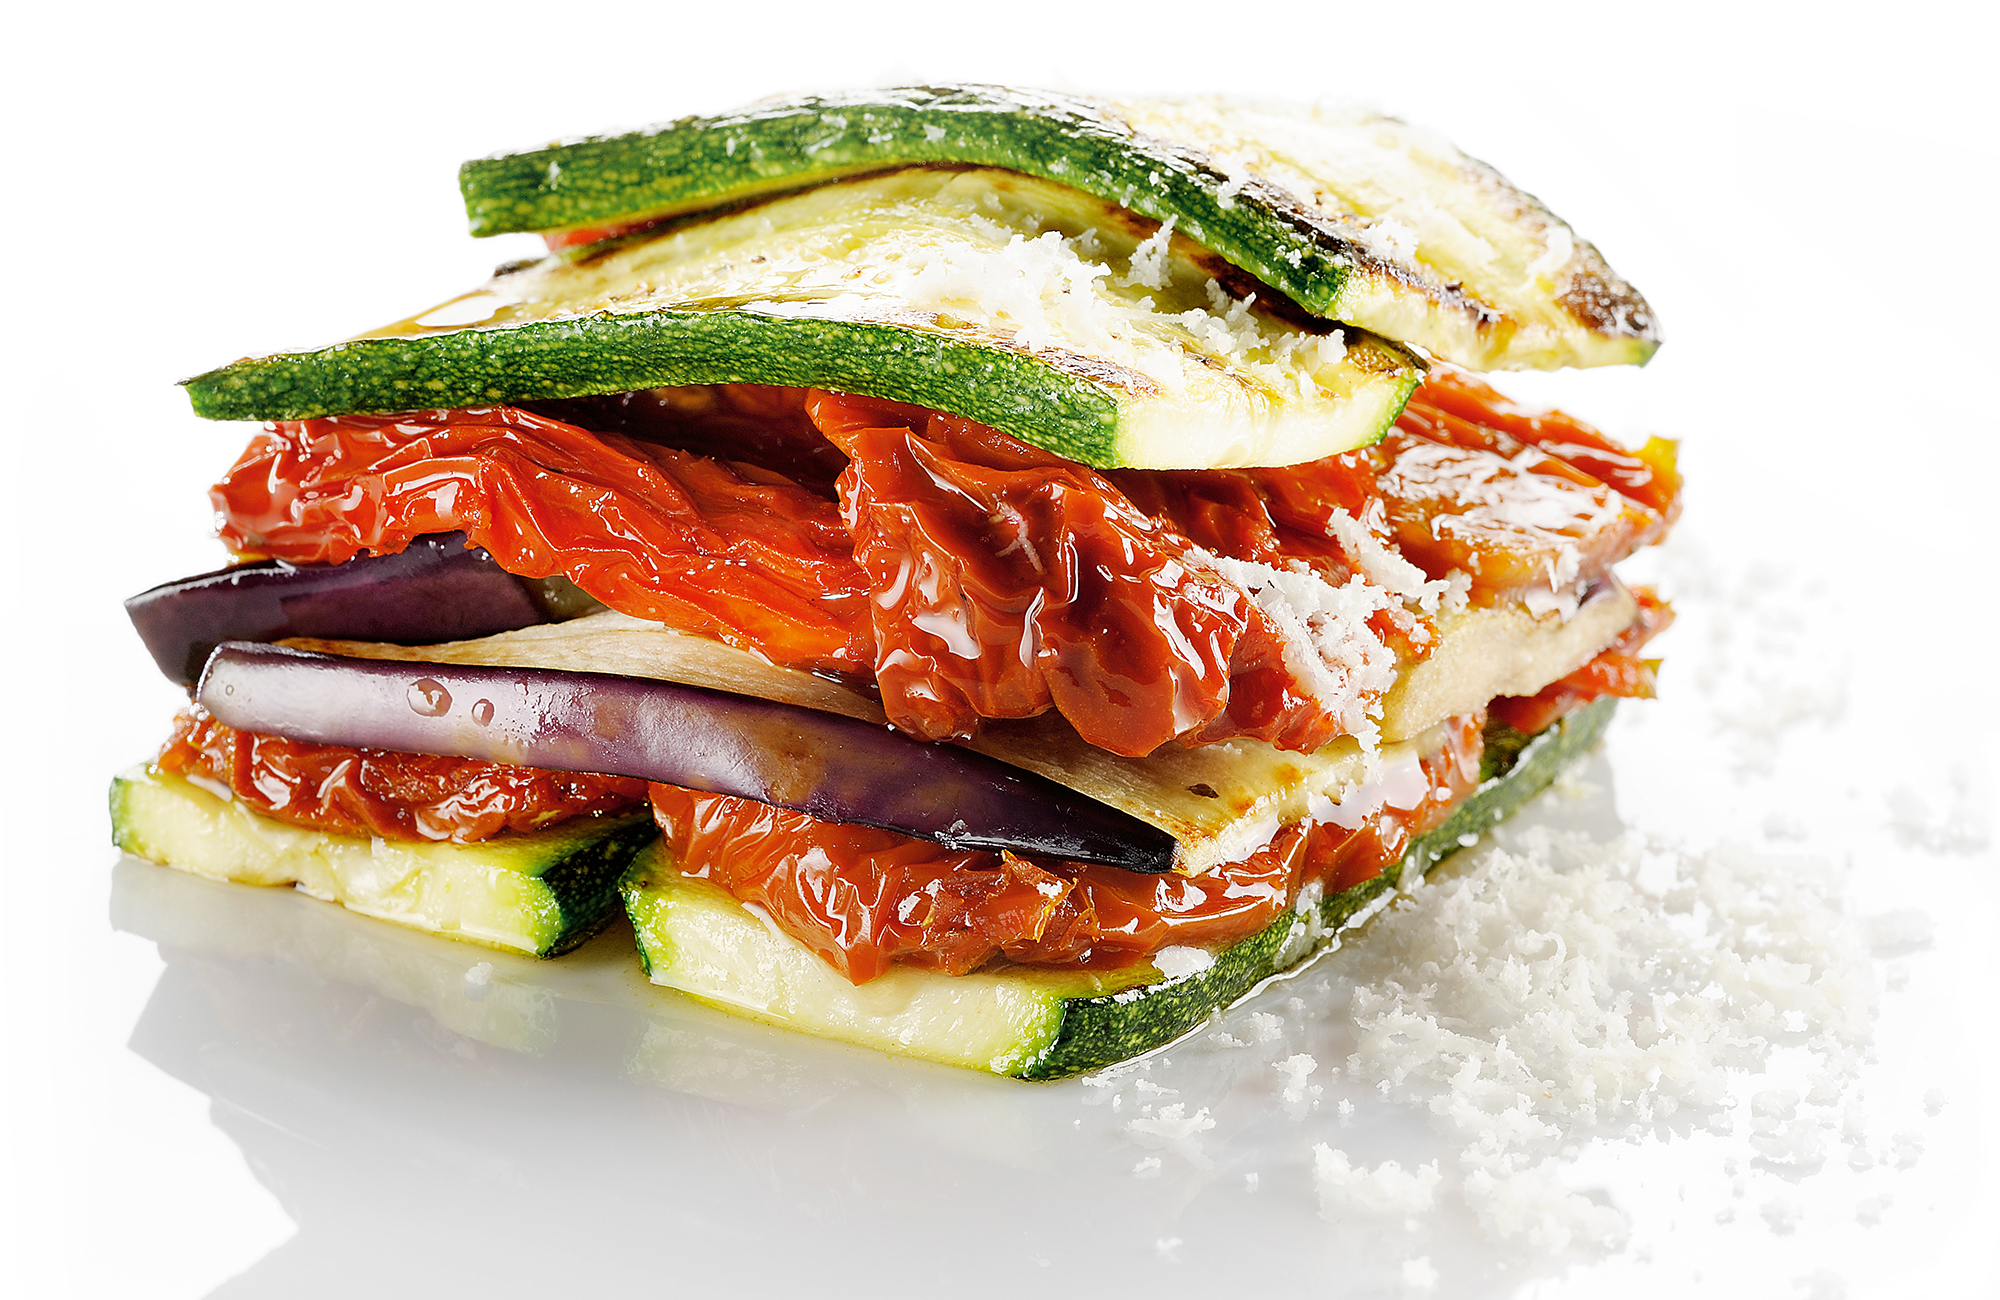 Slices of Zero Olio Sun-Dried Tomatoes, aubergines and zucchini parmigiana style - Ponti